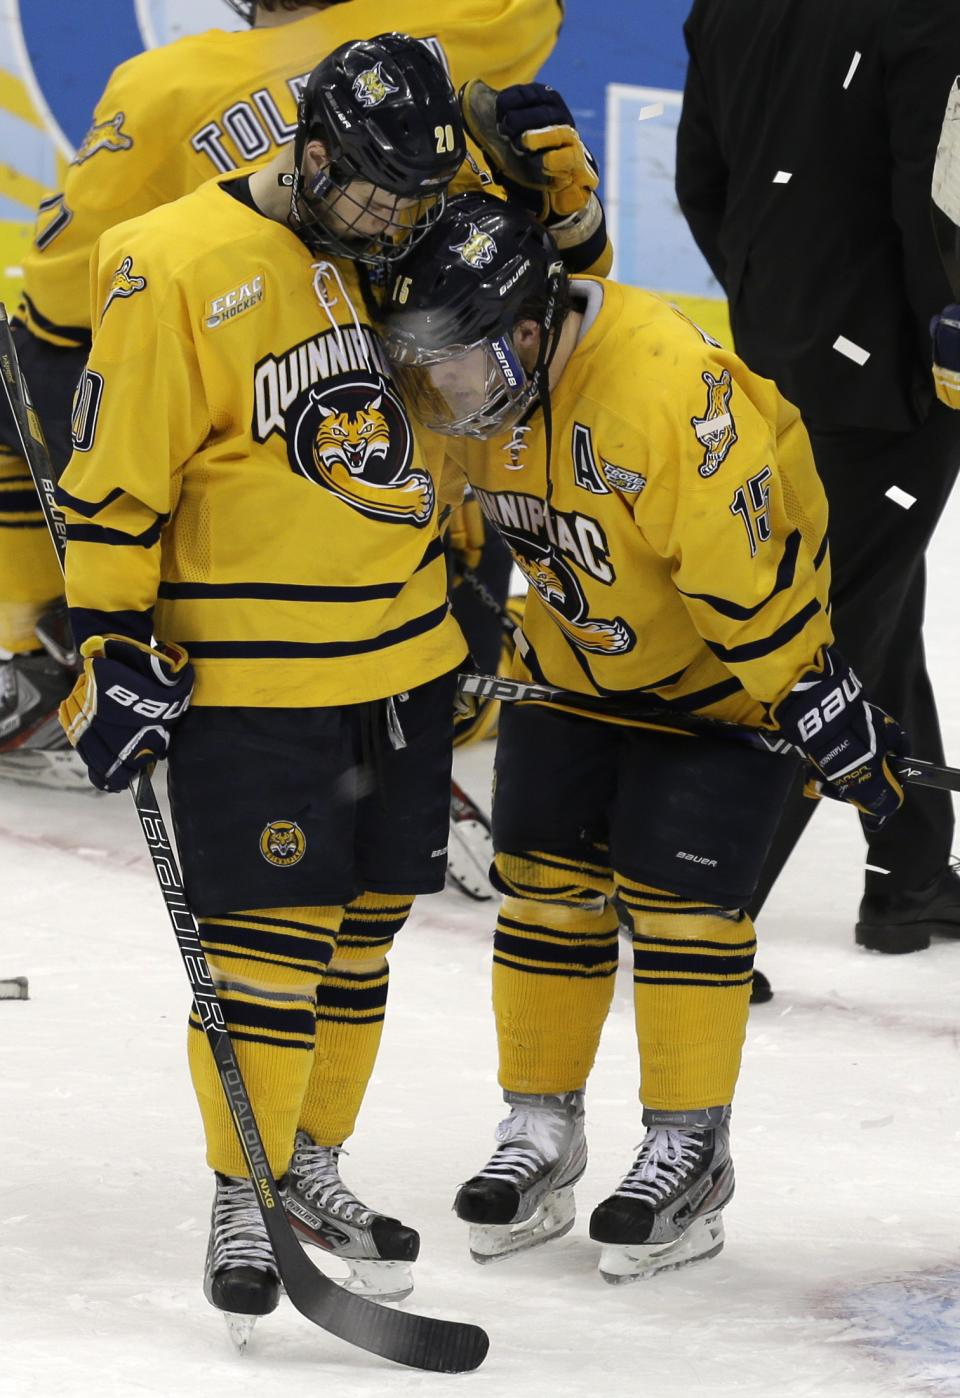 Quinnipiac's Matthew Peca, left, and Kellen Jones (15) console each other after losing to Yale 4-0 in the NCAA men's college hockey national championship game in Pittsburgh Saturday, April 13, 2013. (AP Photo/Gene Puskar)